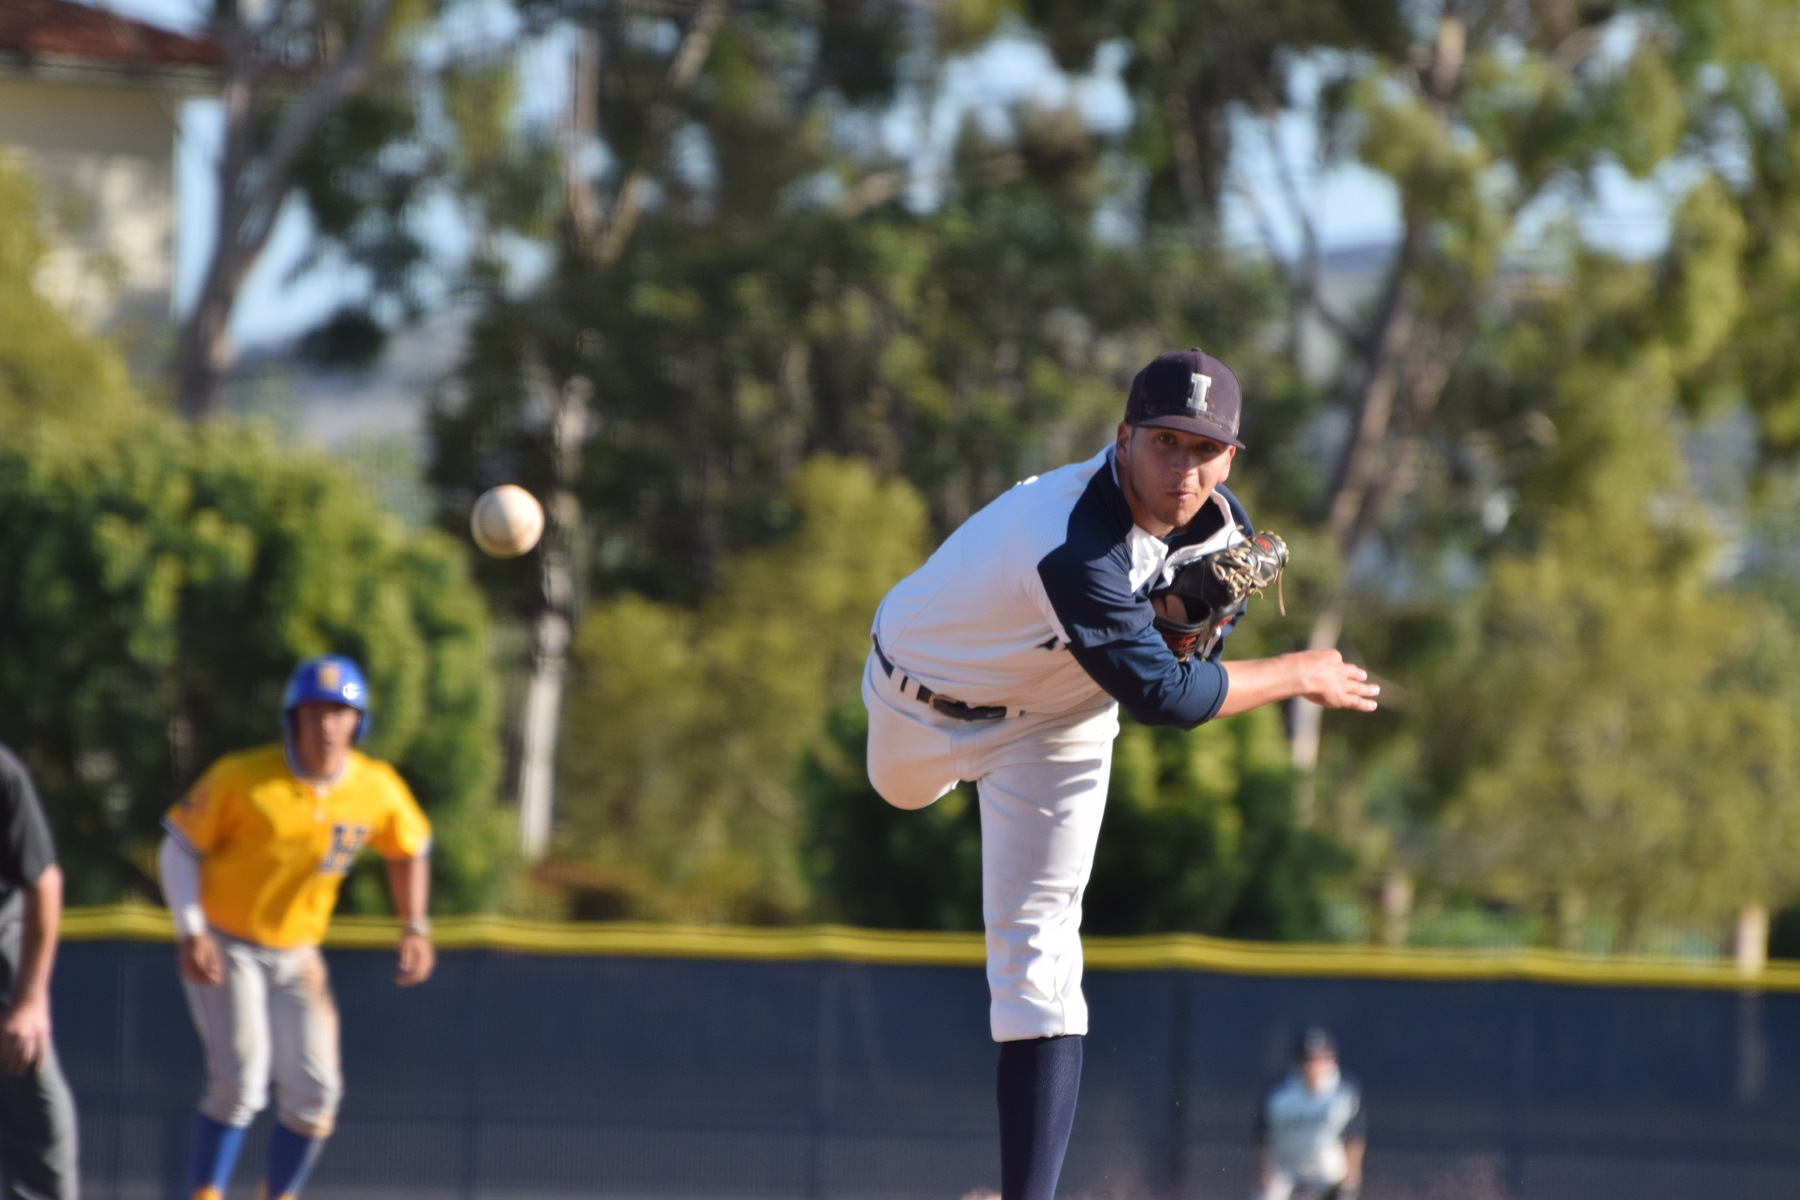 Baseball team falls behind early, drops game to LA Harbor